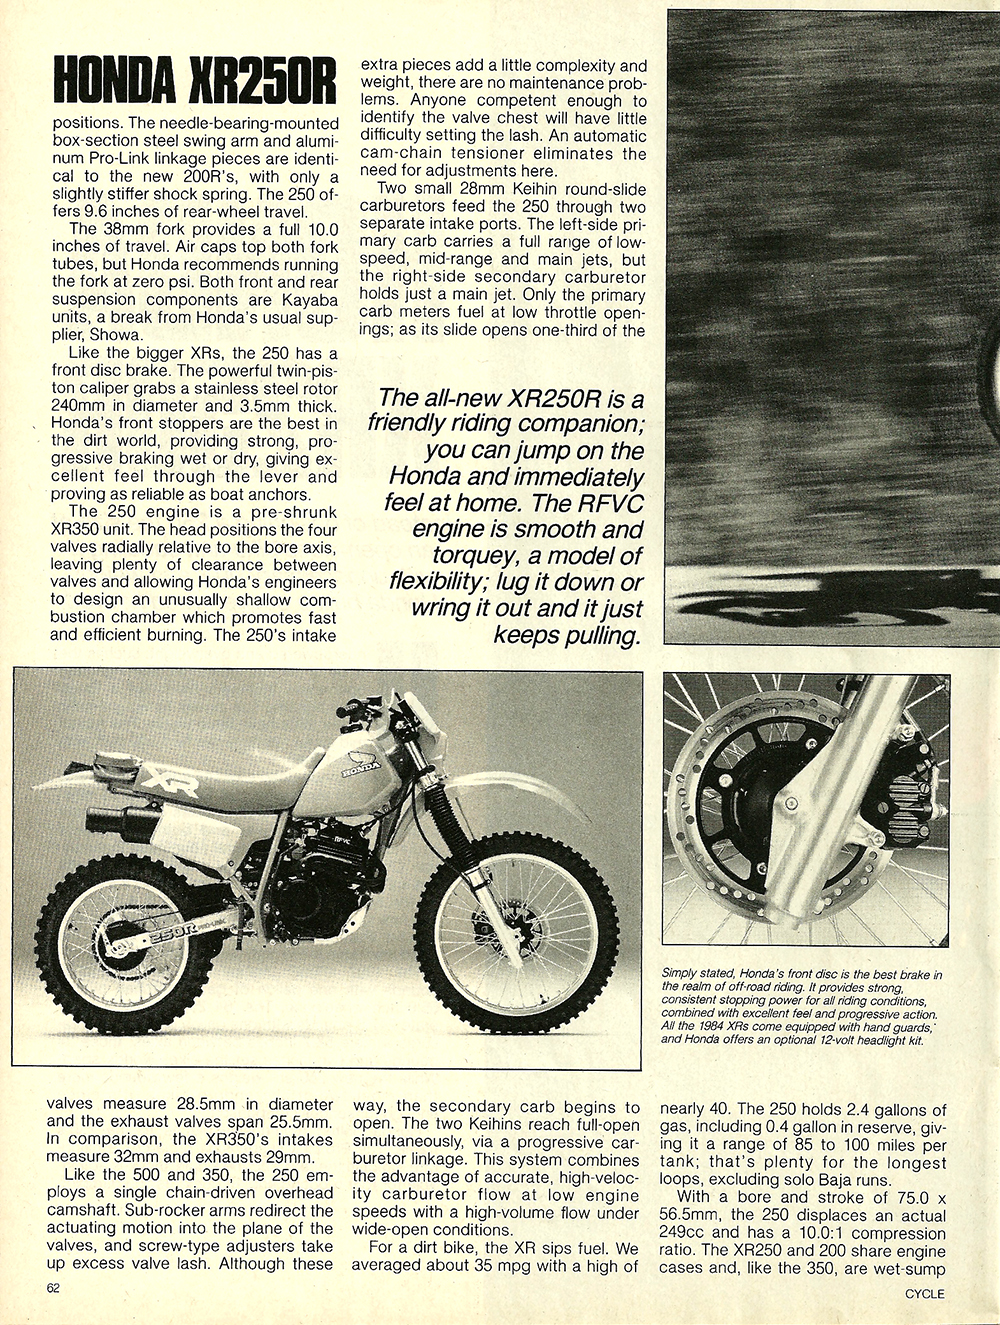 1984 Honda XR250R road test 3.jpg